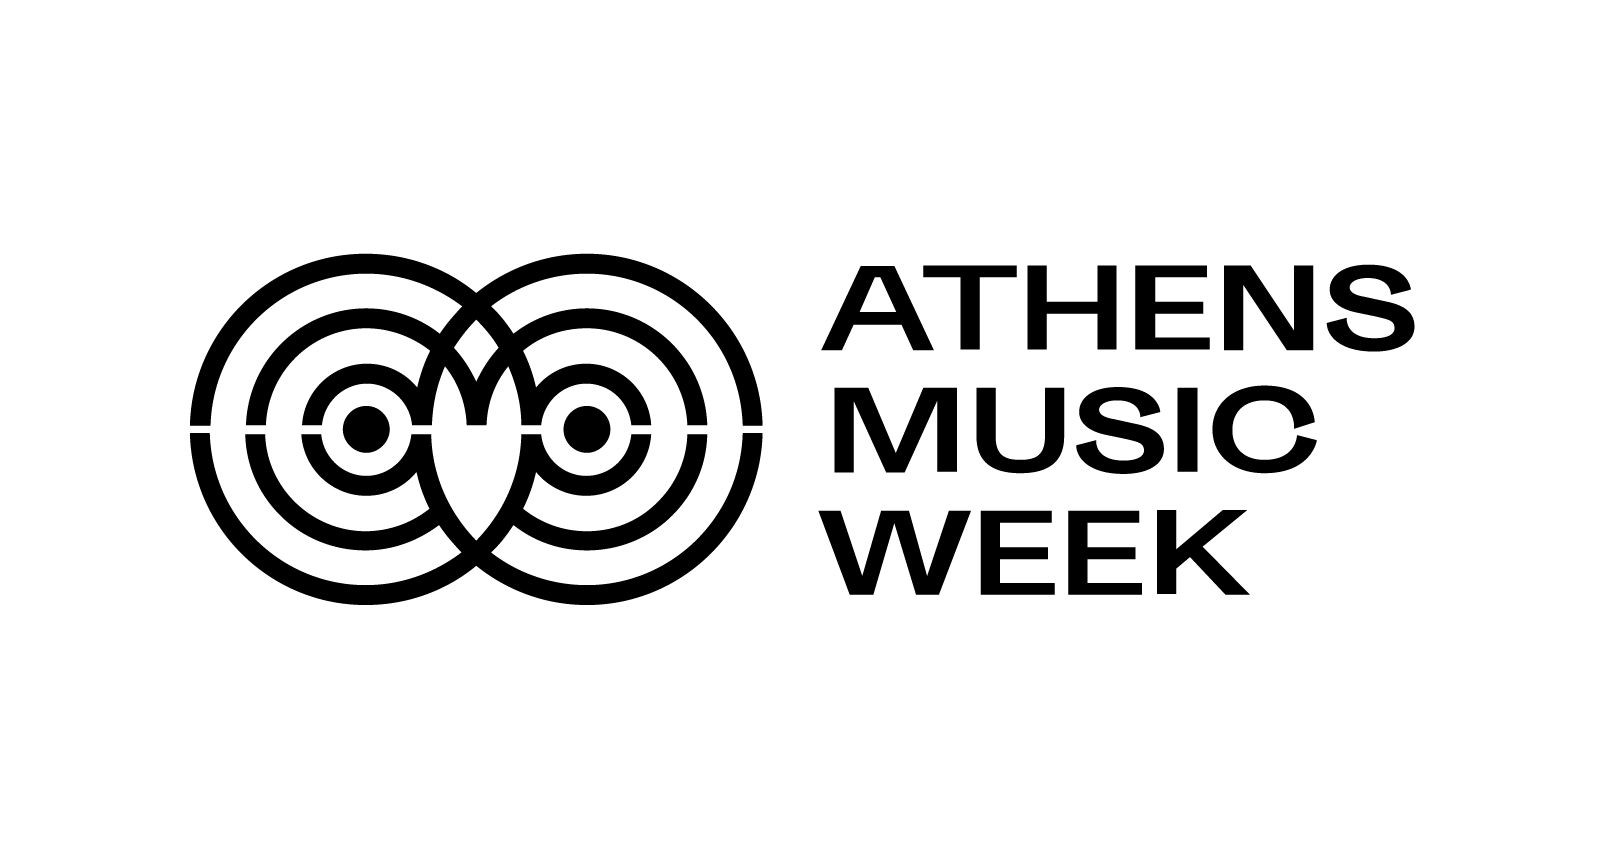 Athens Music Week partner Linecheck